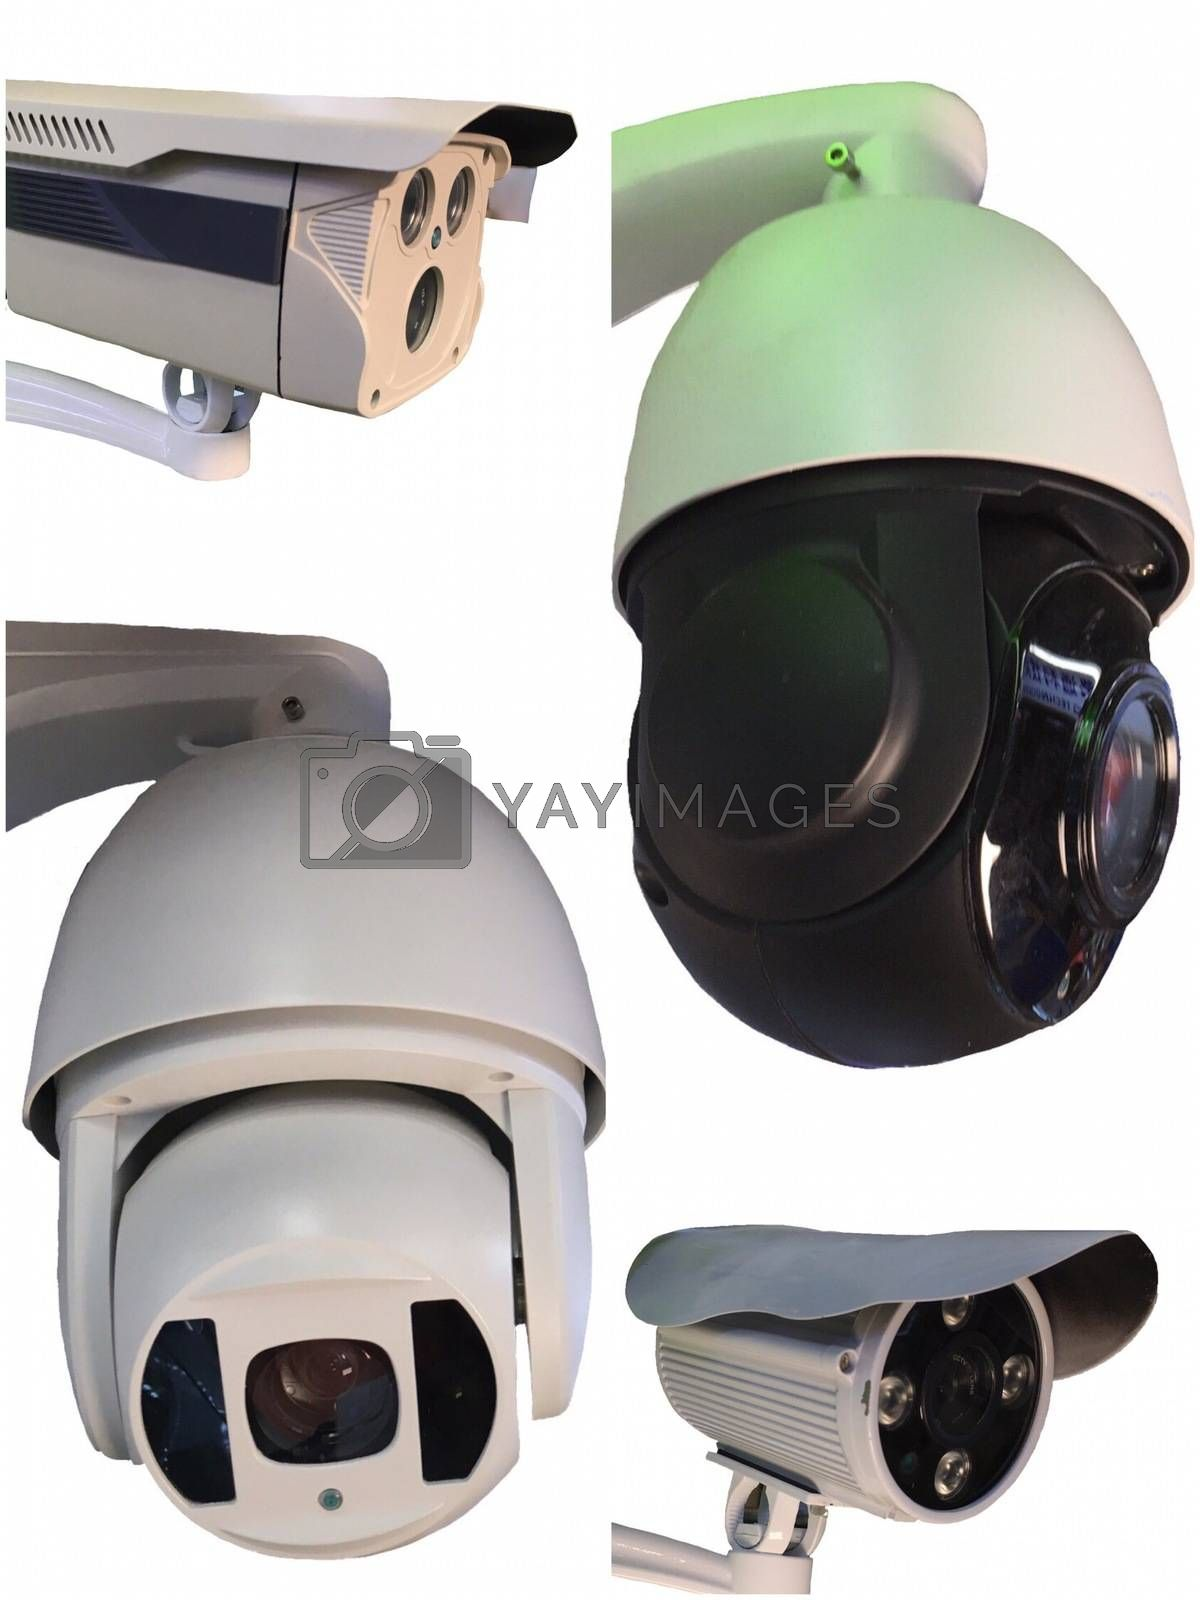 Outdoor CCTV Group of monitoring, security cameras  isolated on white background.